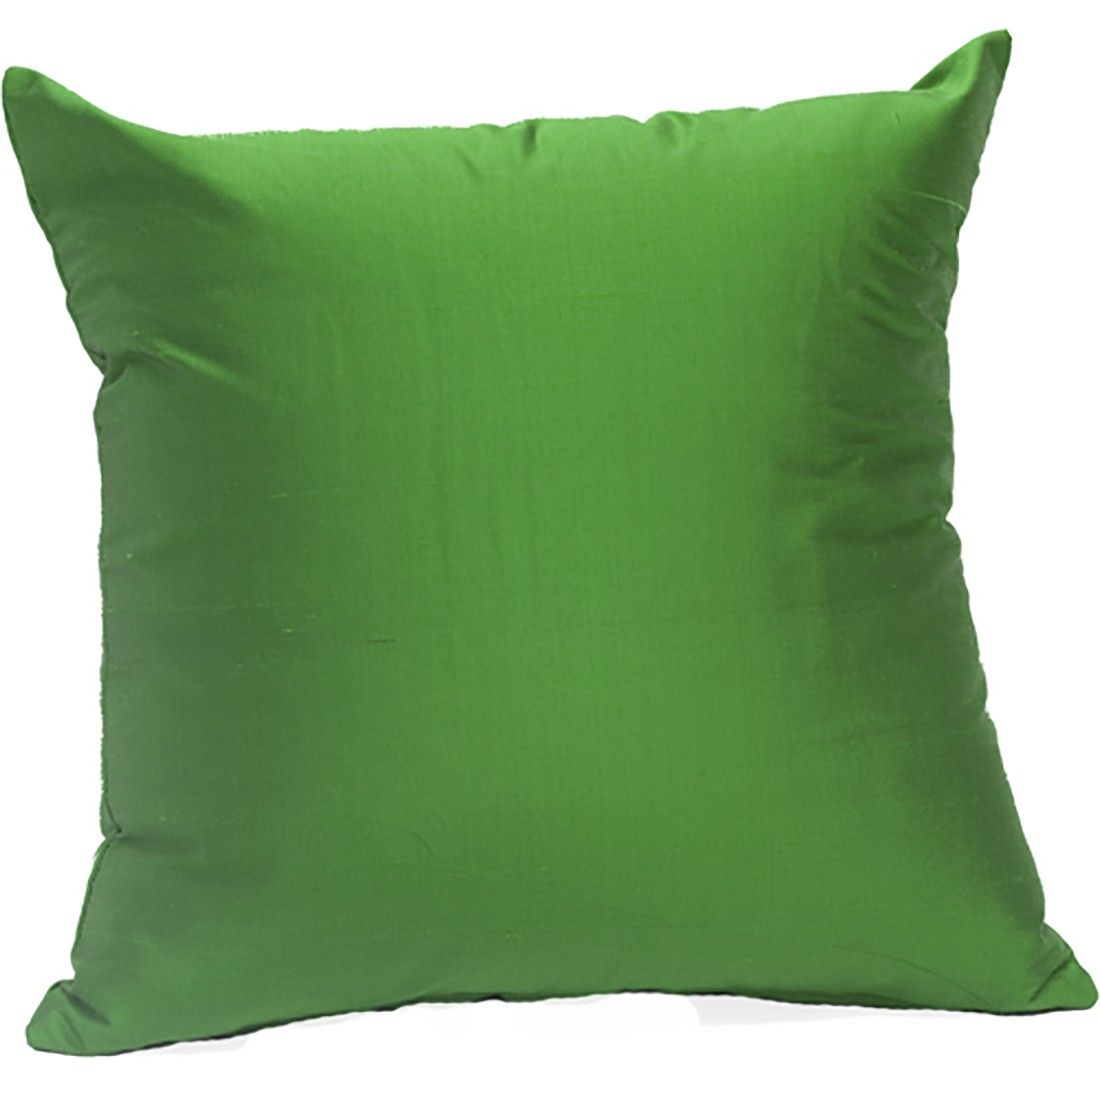 Pillow cover green inspiration board pinterest pillows